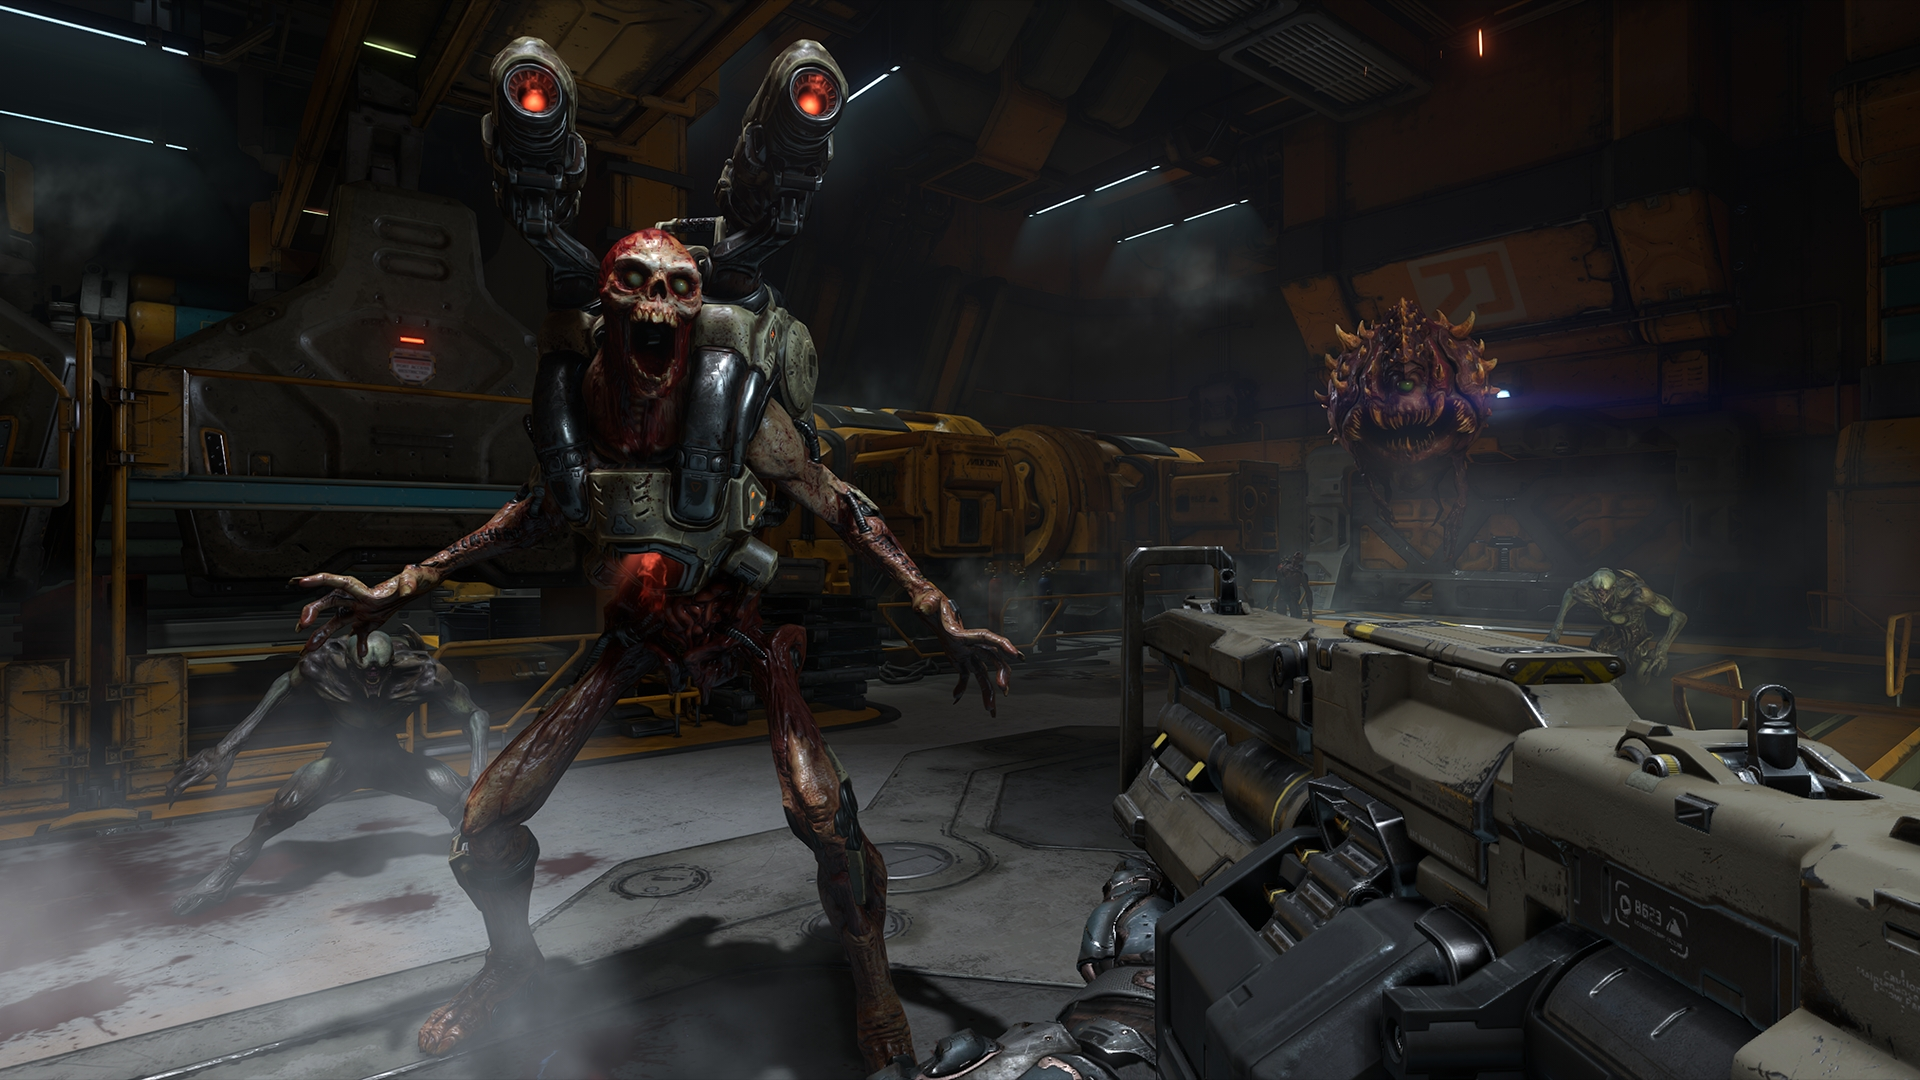 Doom's Arcade Mode is the ideal way to play the campaign